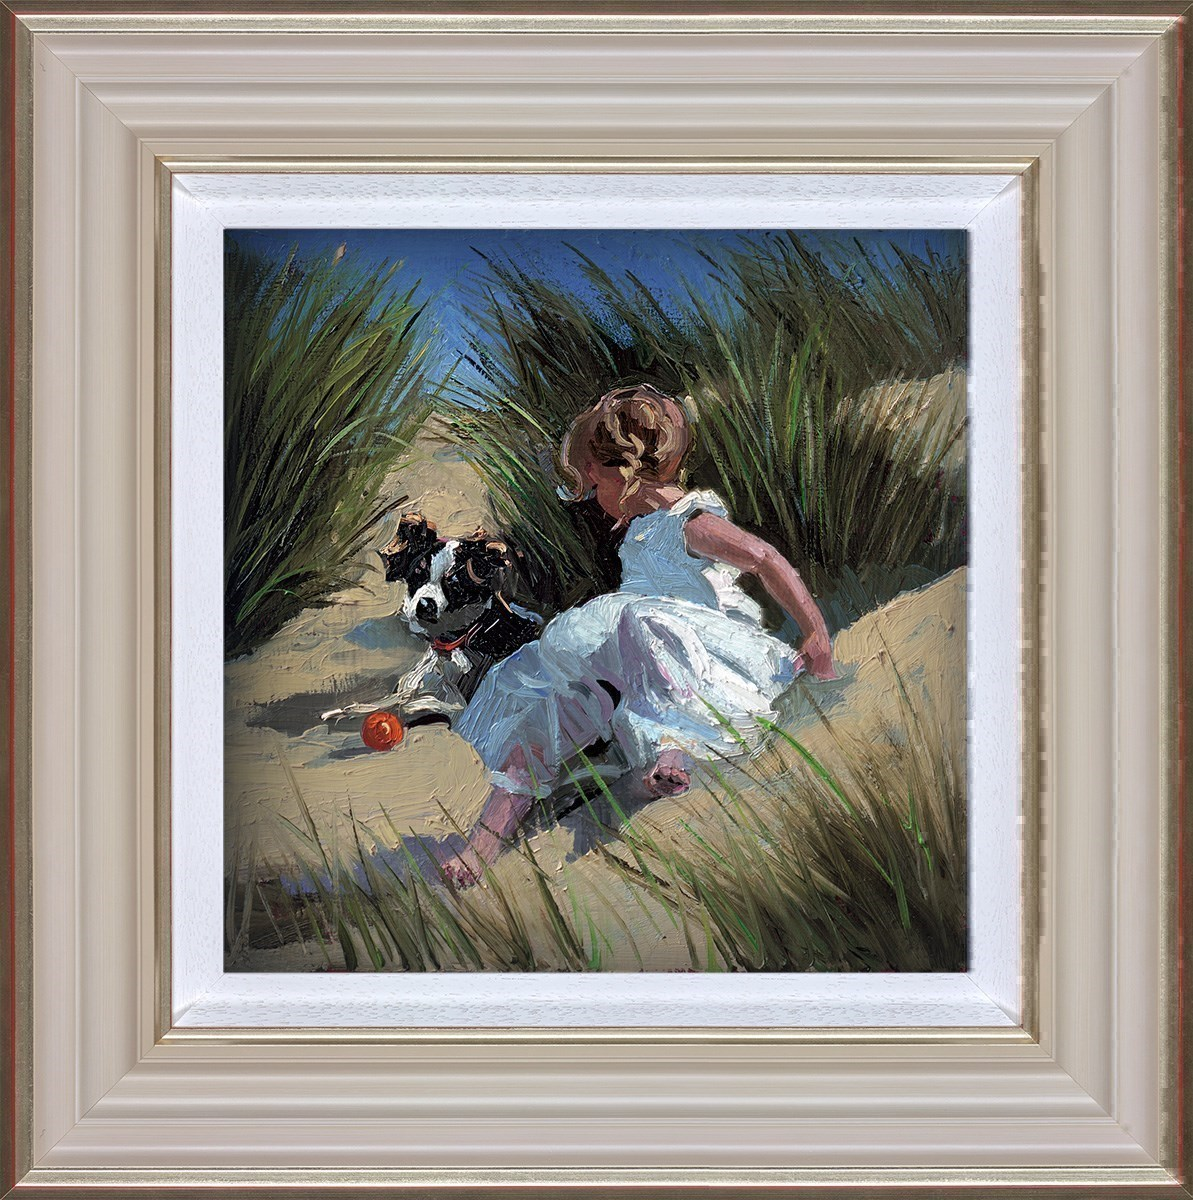 Playmates by Sherree Valentine Daines - Hand Finished Limited Edition on Canvas sized 11x11 inches. Available from Whitewall Galleries